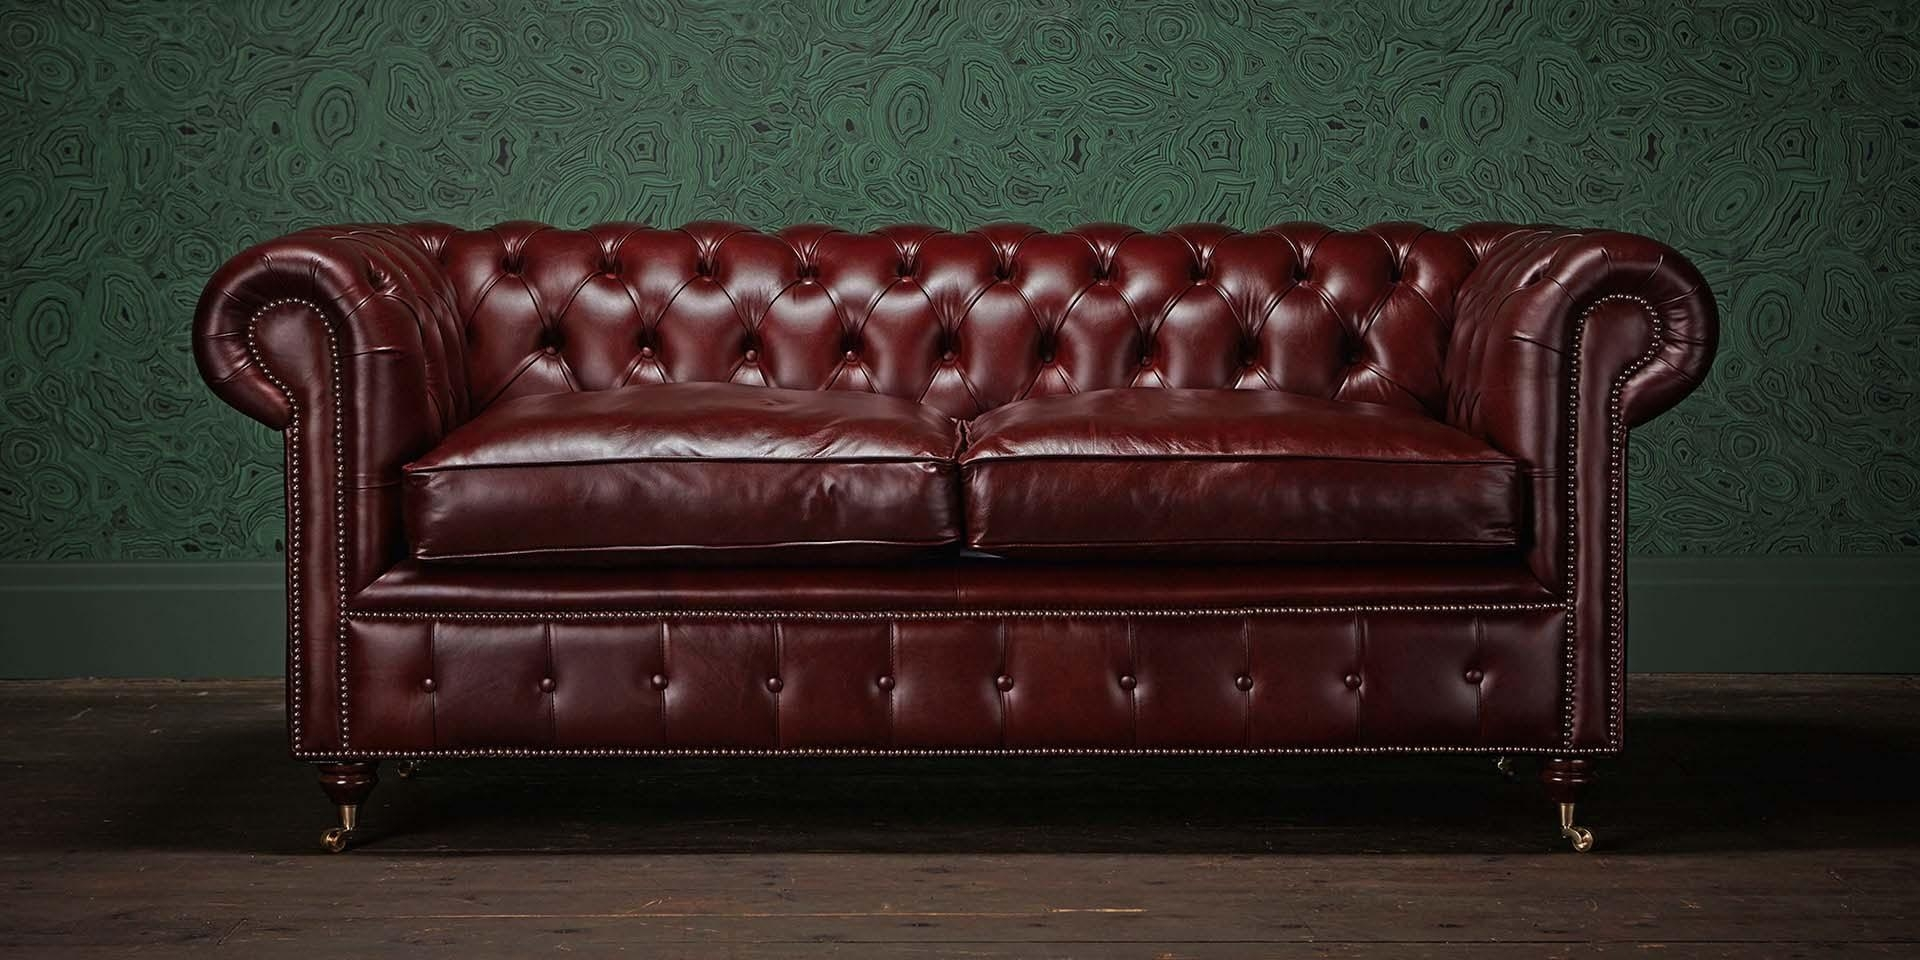 Chesterfields Of England | The Original Chesterfield Company Pertaining To Chesterfield Sofas And Chairs (Image 11 of 20)